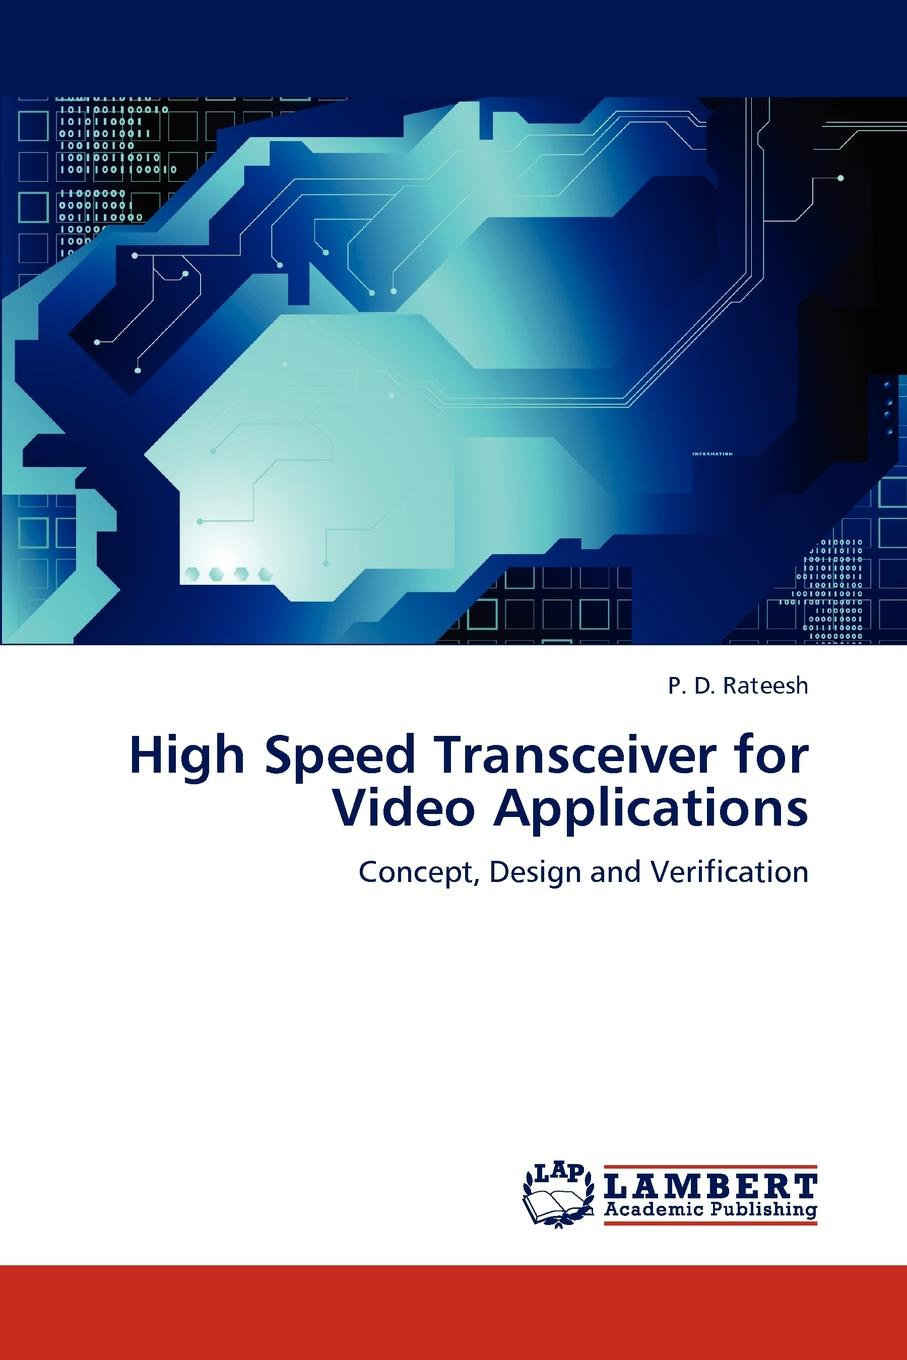 P. D. Rateesh High Speed Transceiver for Video Applications